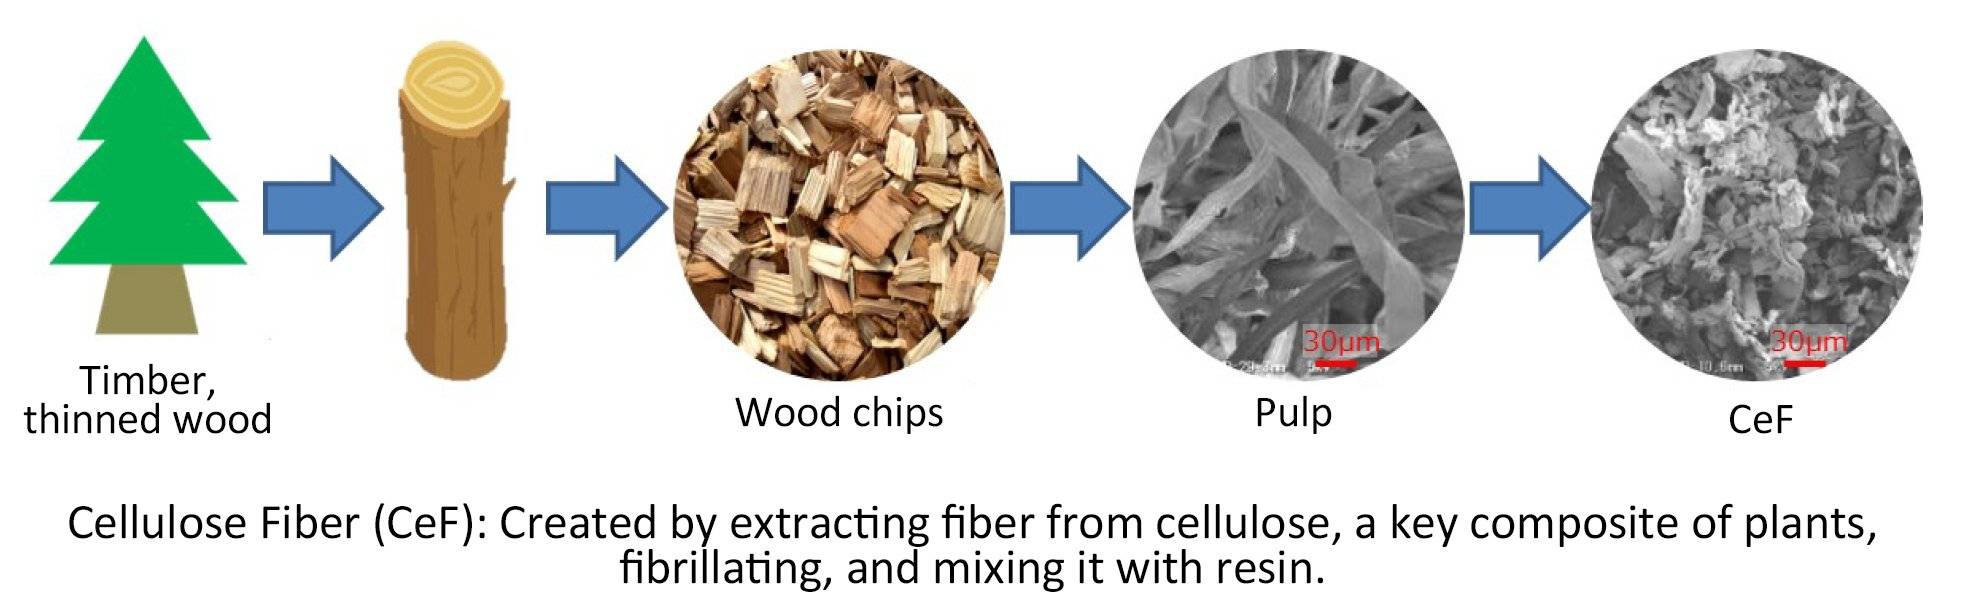 Illustration: Cellulose Fiber (CeF) is created by extracting fiber from cellulose, a key composite of plants, fibrillating, and mixing it with resin.